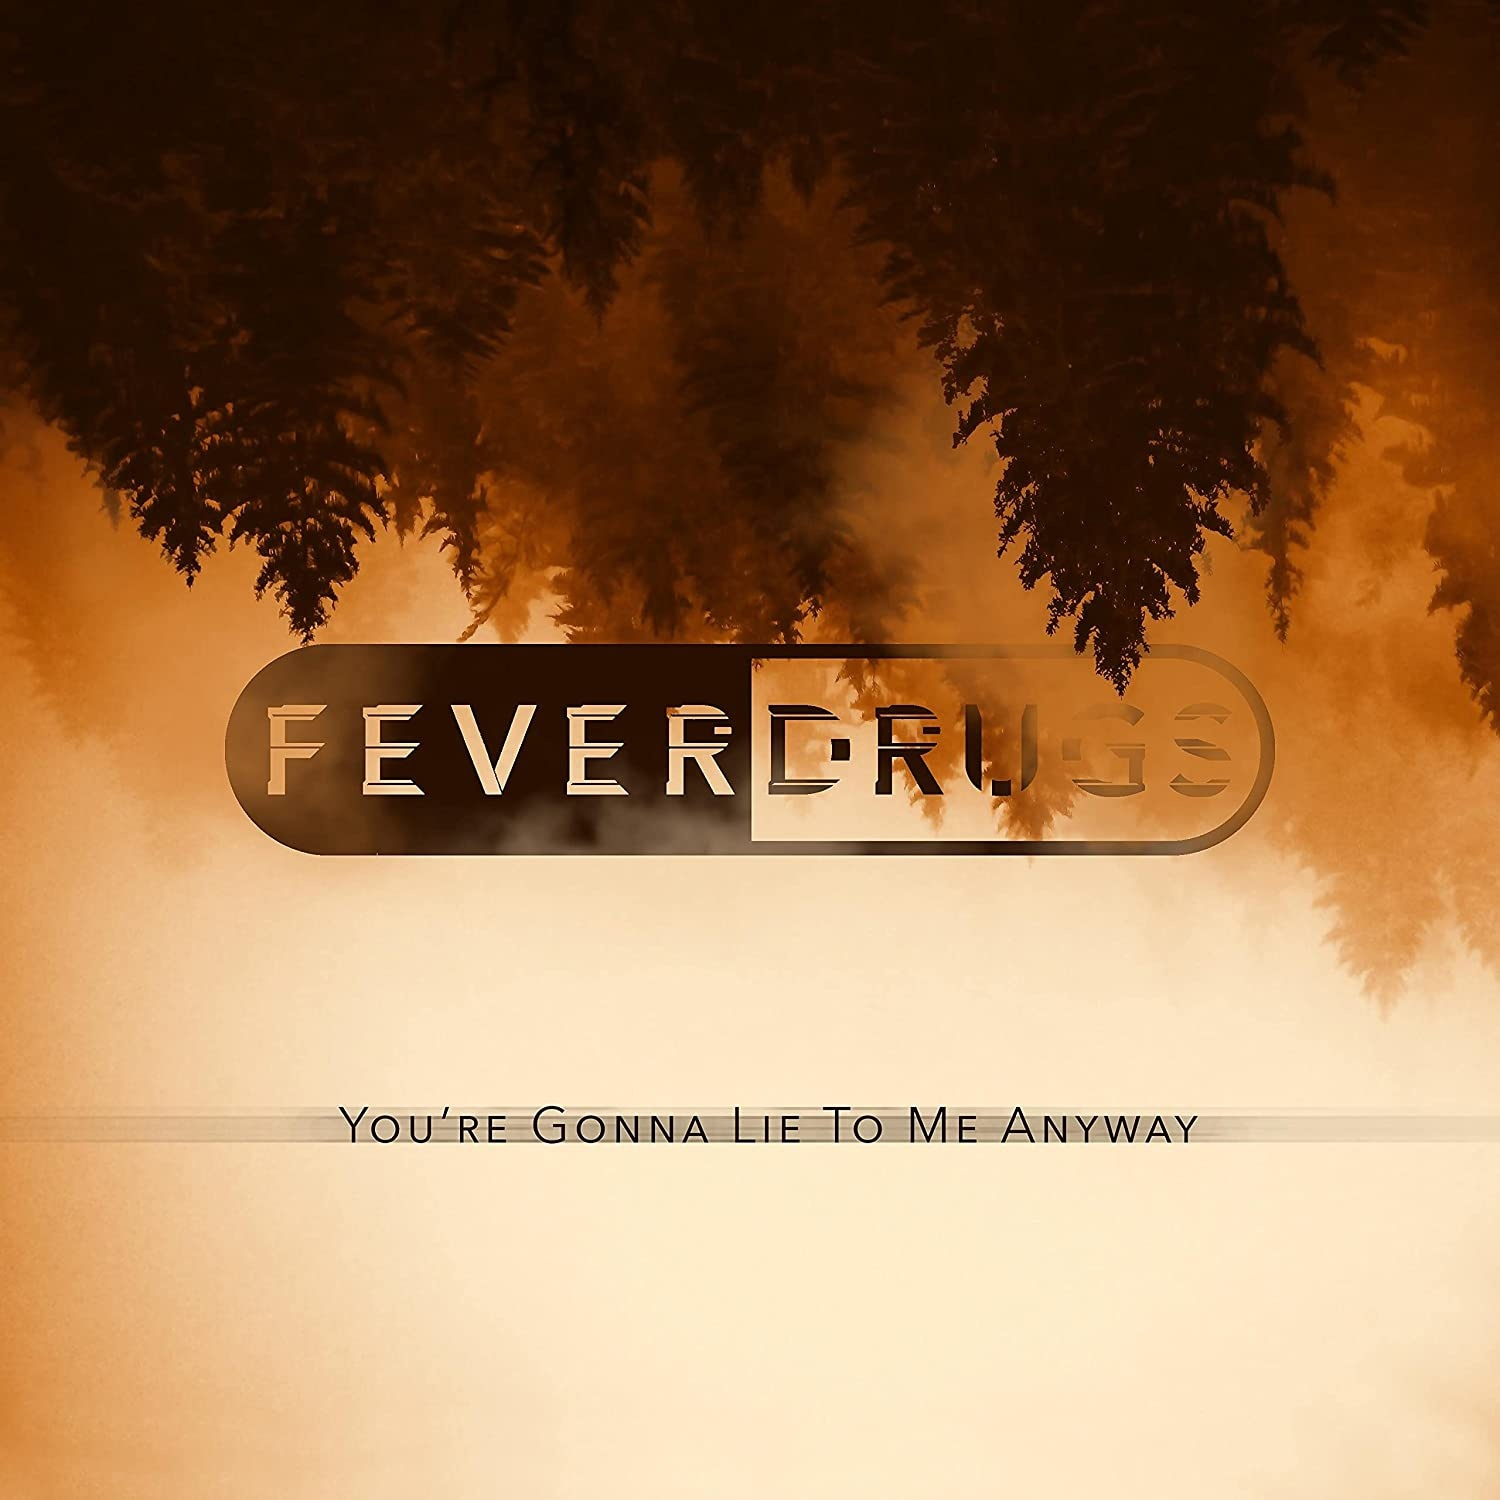 Fever Drugs - Youre Gonna Lie To Me Anyway (2021)